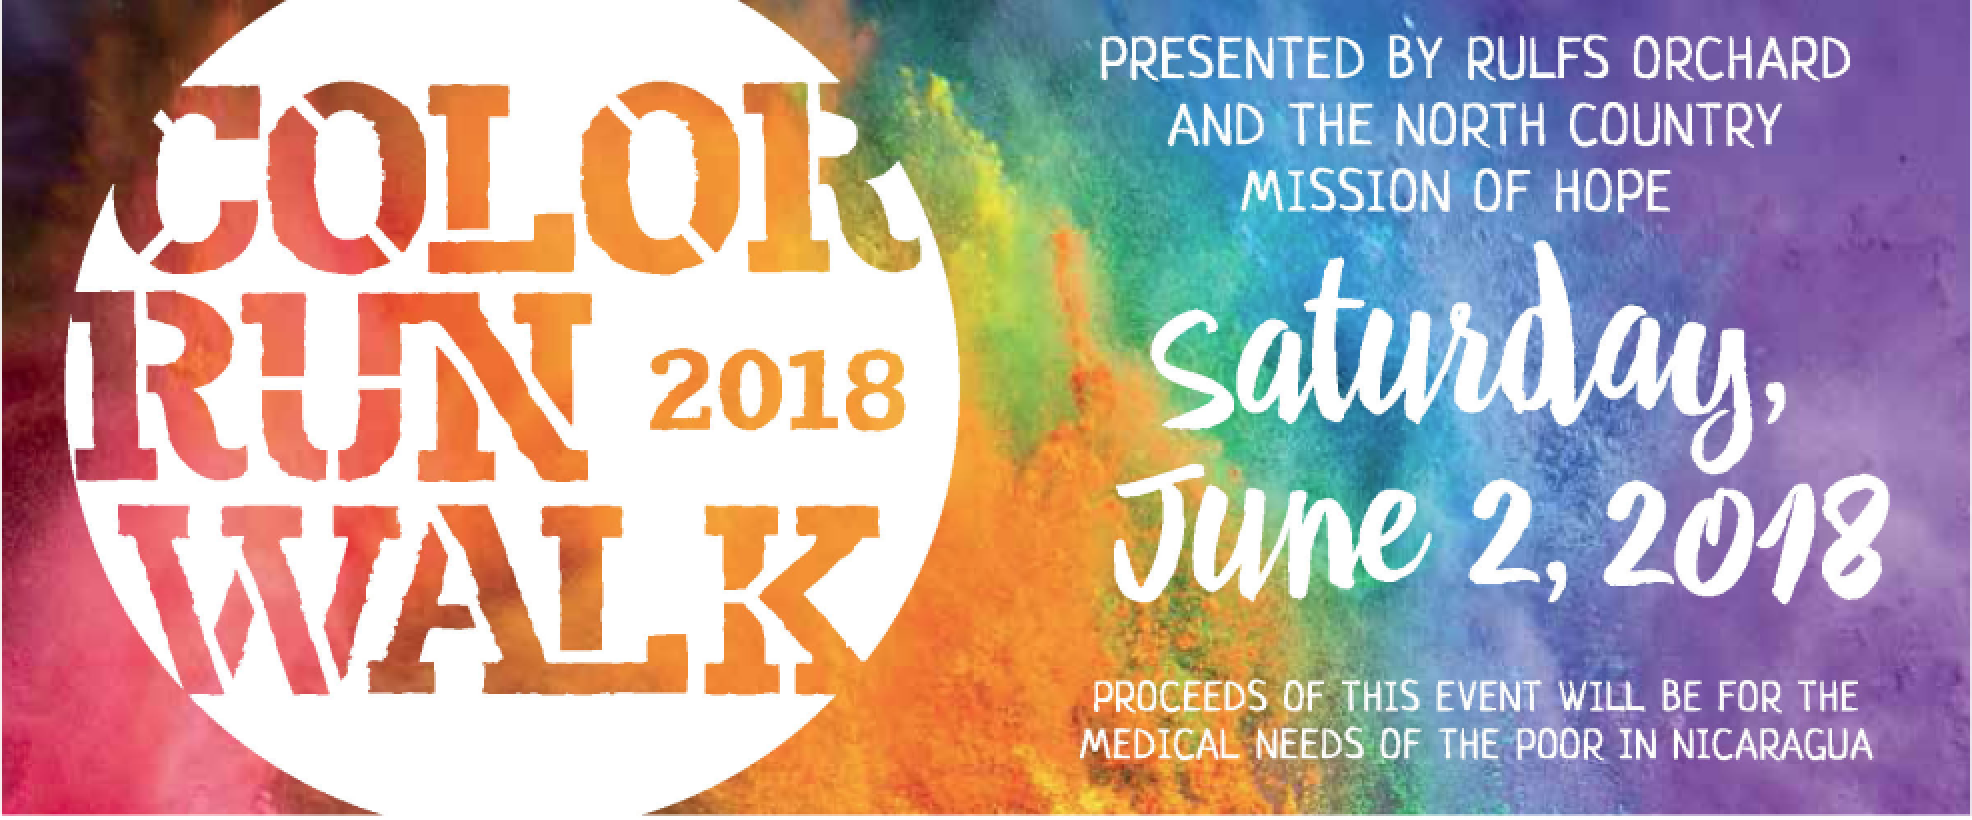 Color Run Registration Form - Rulfs Orchard 2018